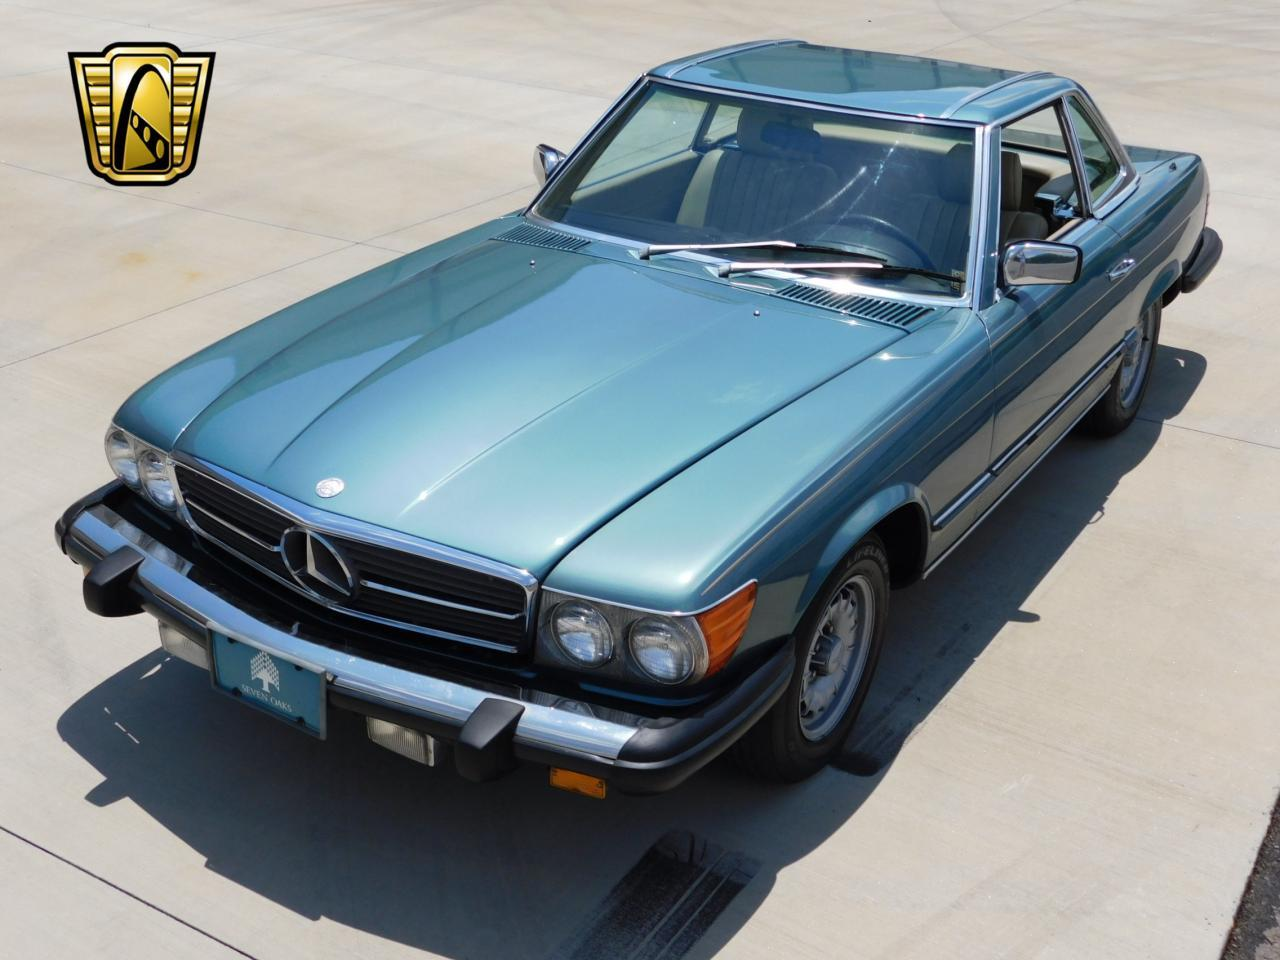 Large Picture of 1985 Mercedes-Benz 380SL located in Alpharetta Georgia - $13,595.00 Offered by Gateway Classic Cars - Atlanta - LBSX